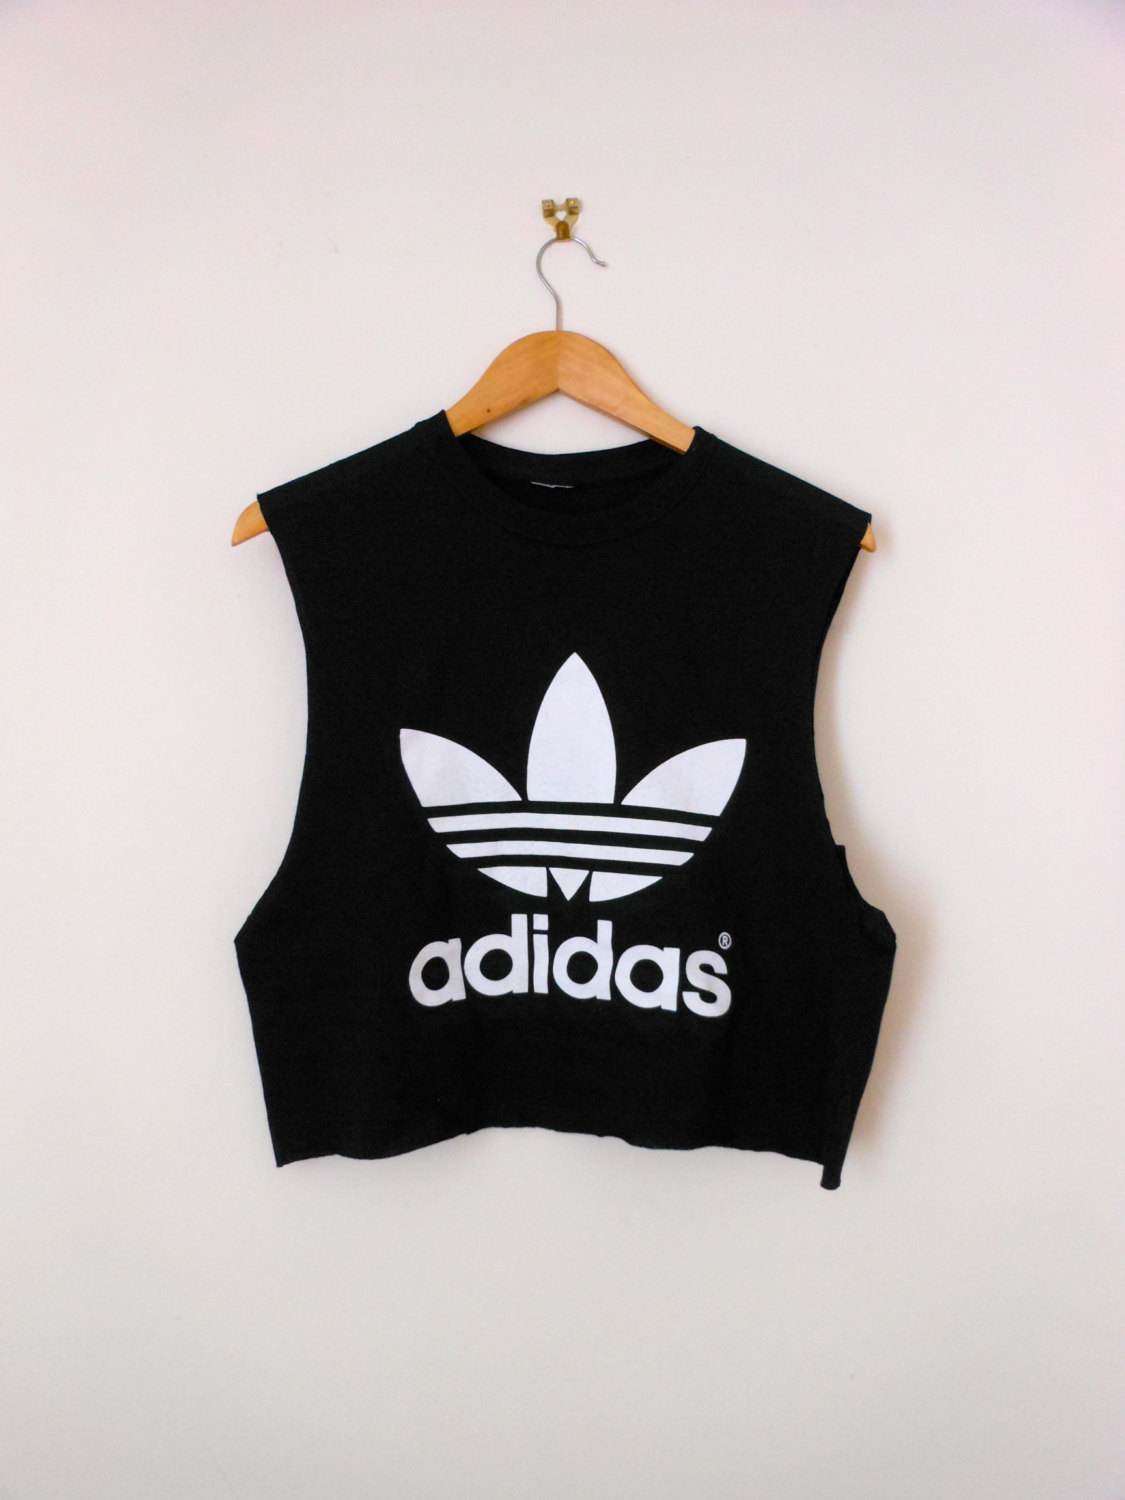 classic back adidas swag style vest crop top tshirt fresh boss dope ...